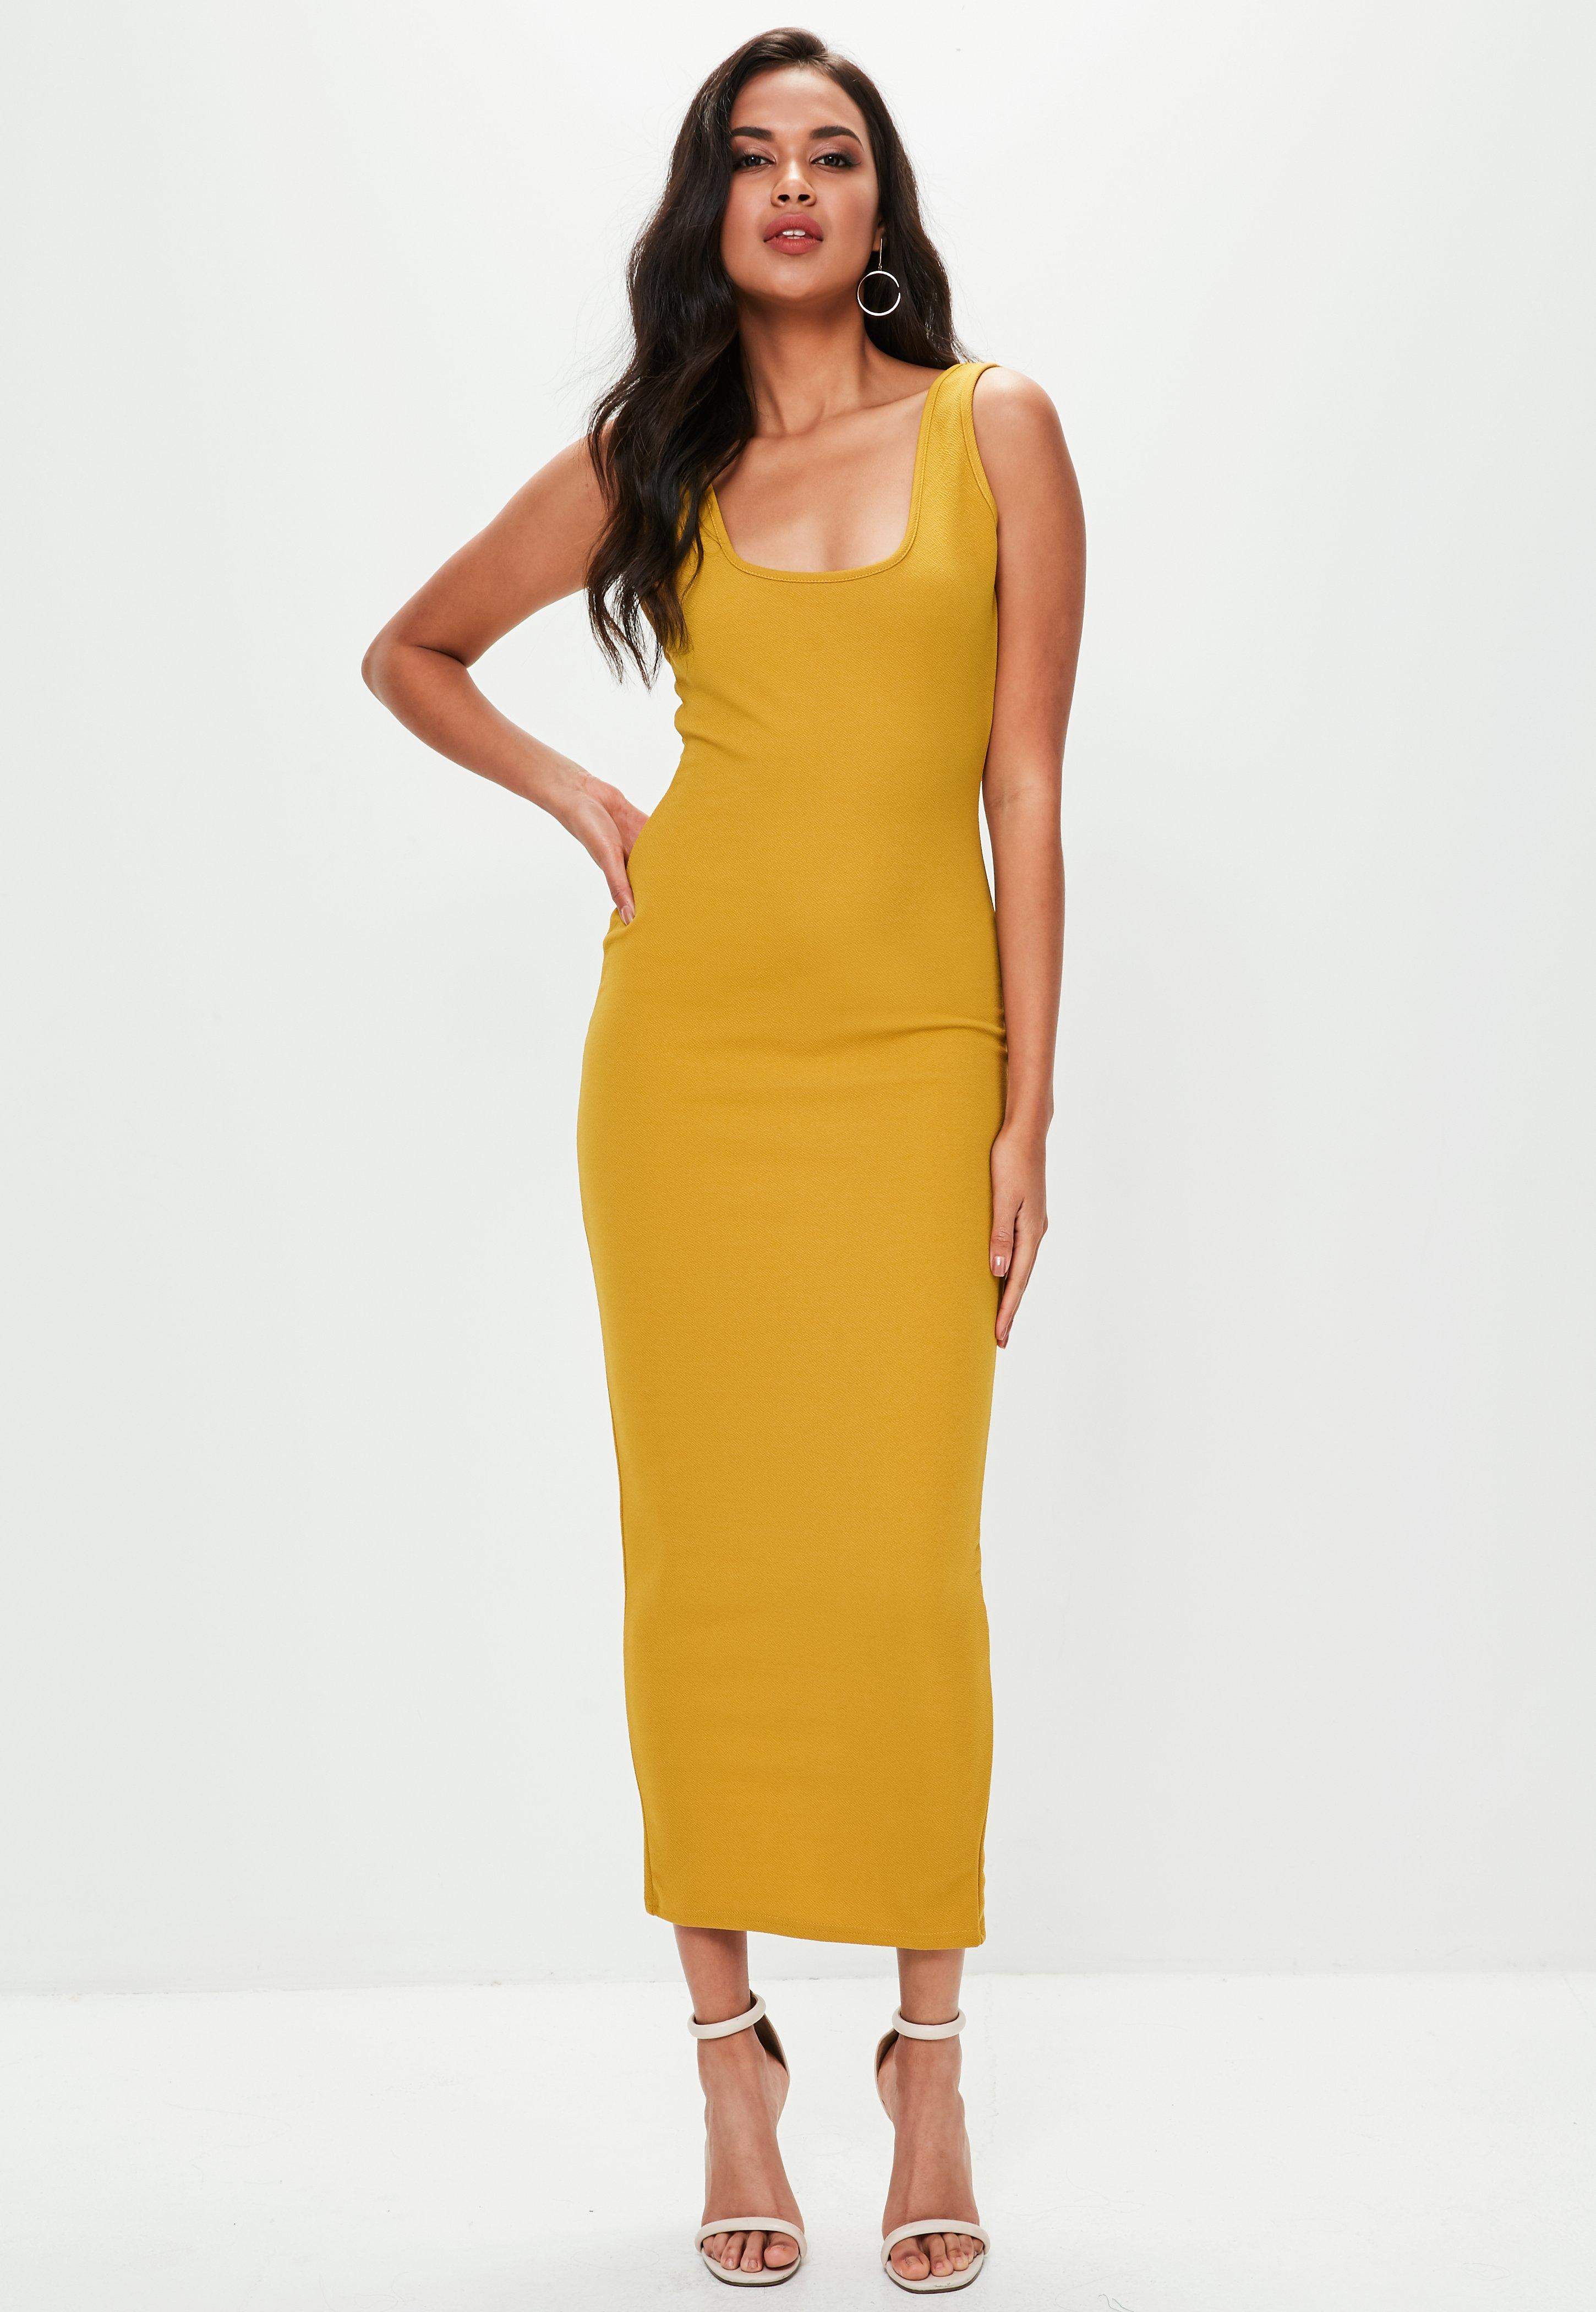 Yellow Maxi Dresses   Shop Yellow Maxi Dresses Online - Missguided